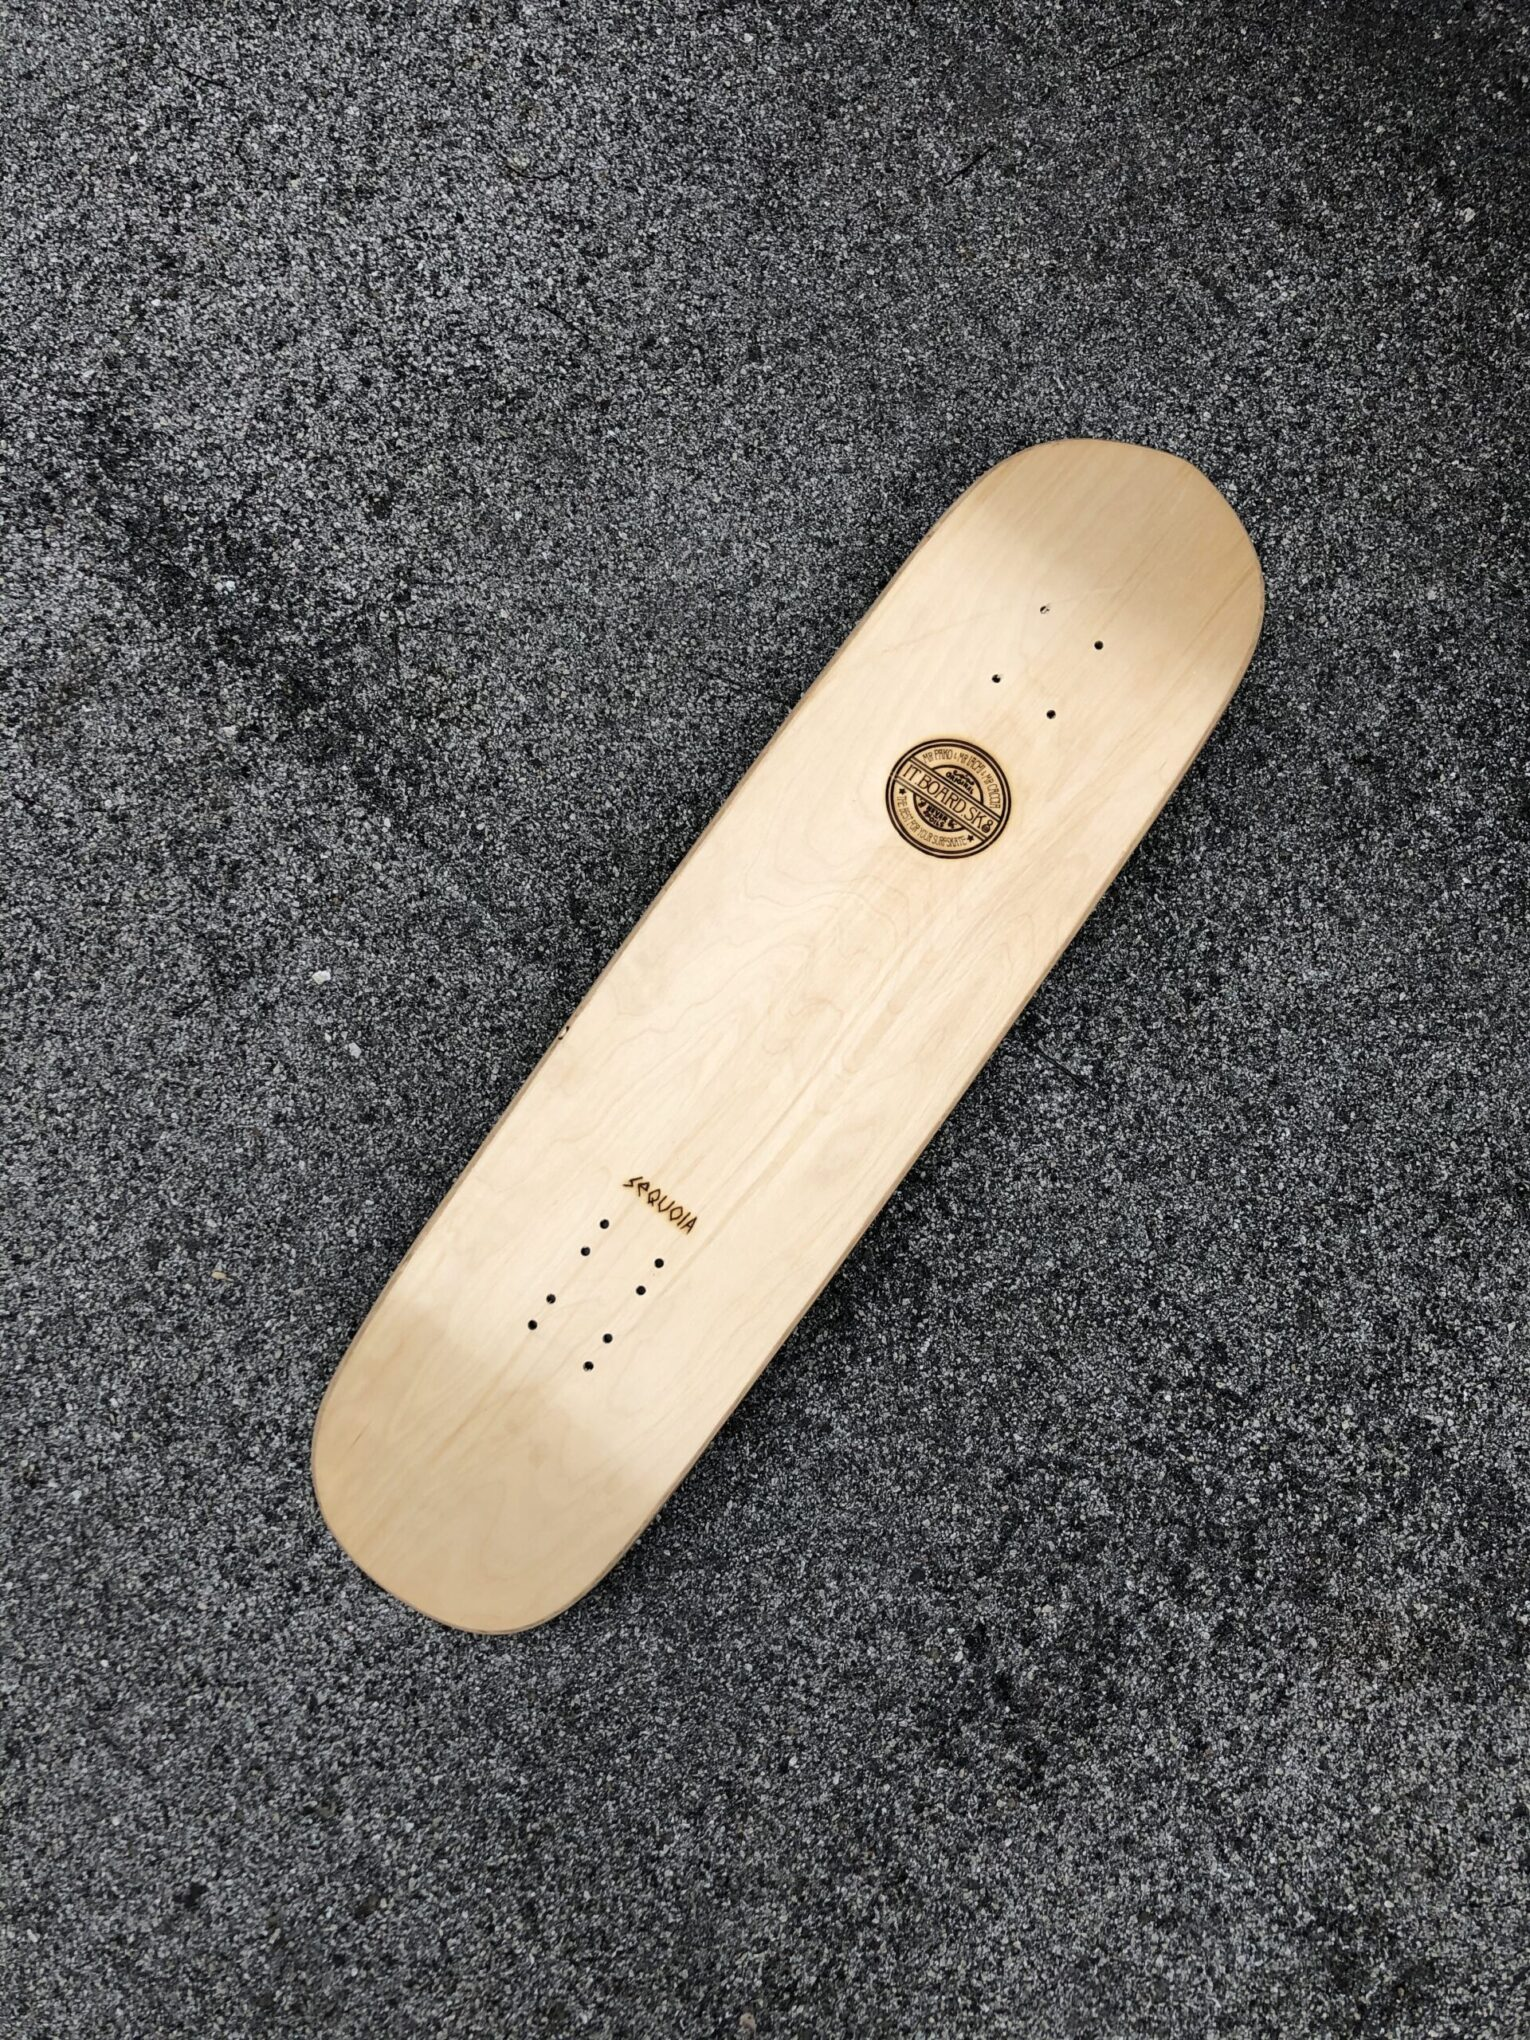 Sequoia surfskate